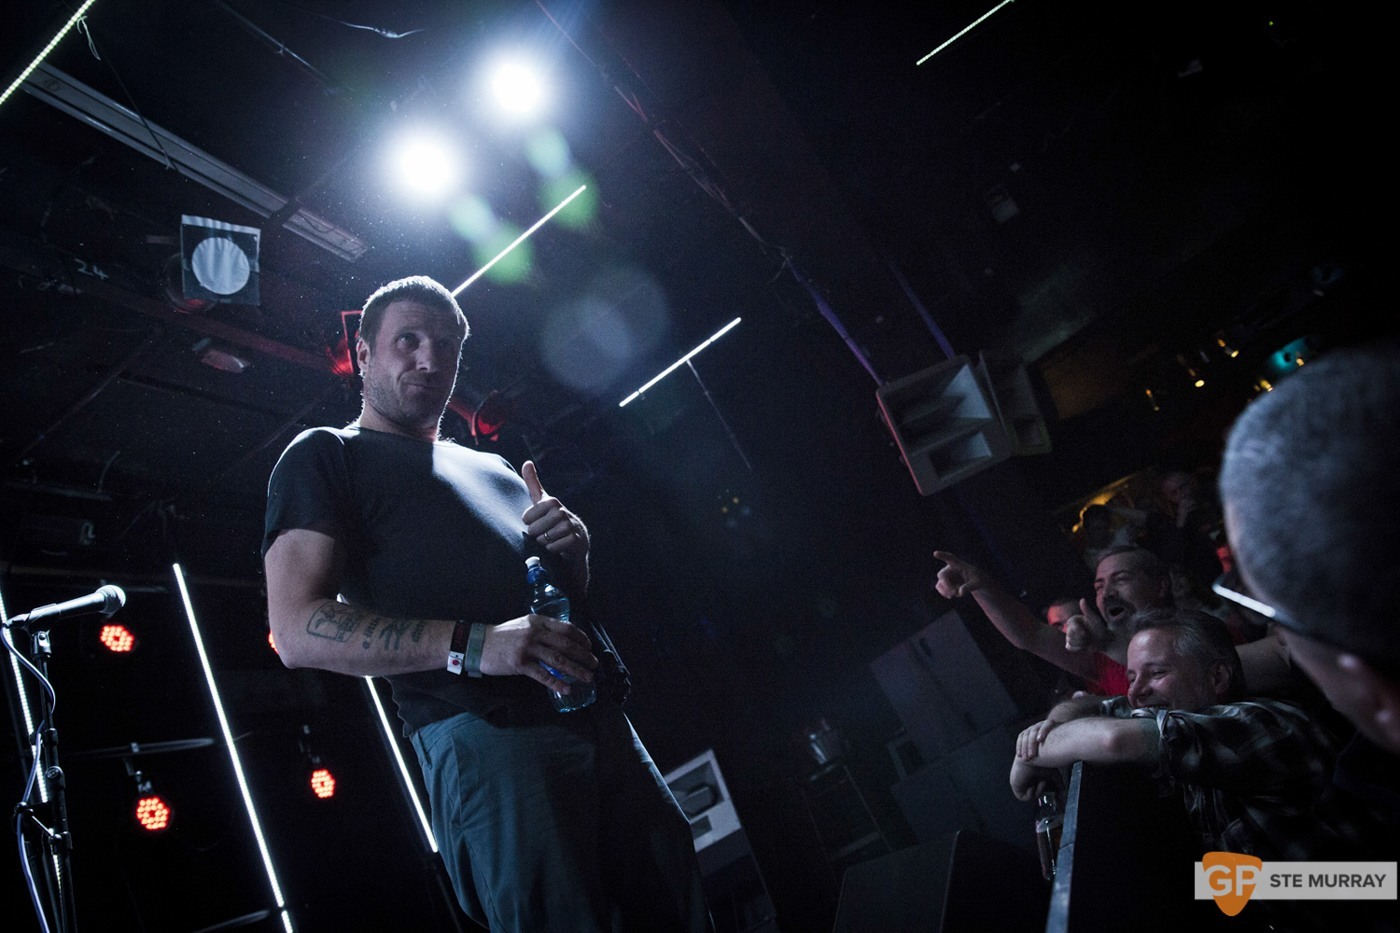 Sleaford Mods at District 8 by Ste Murray16